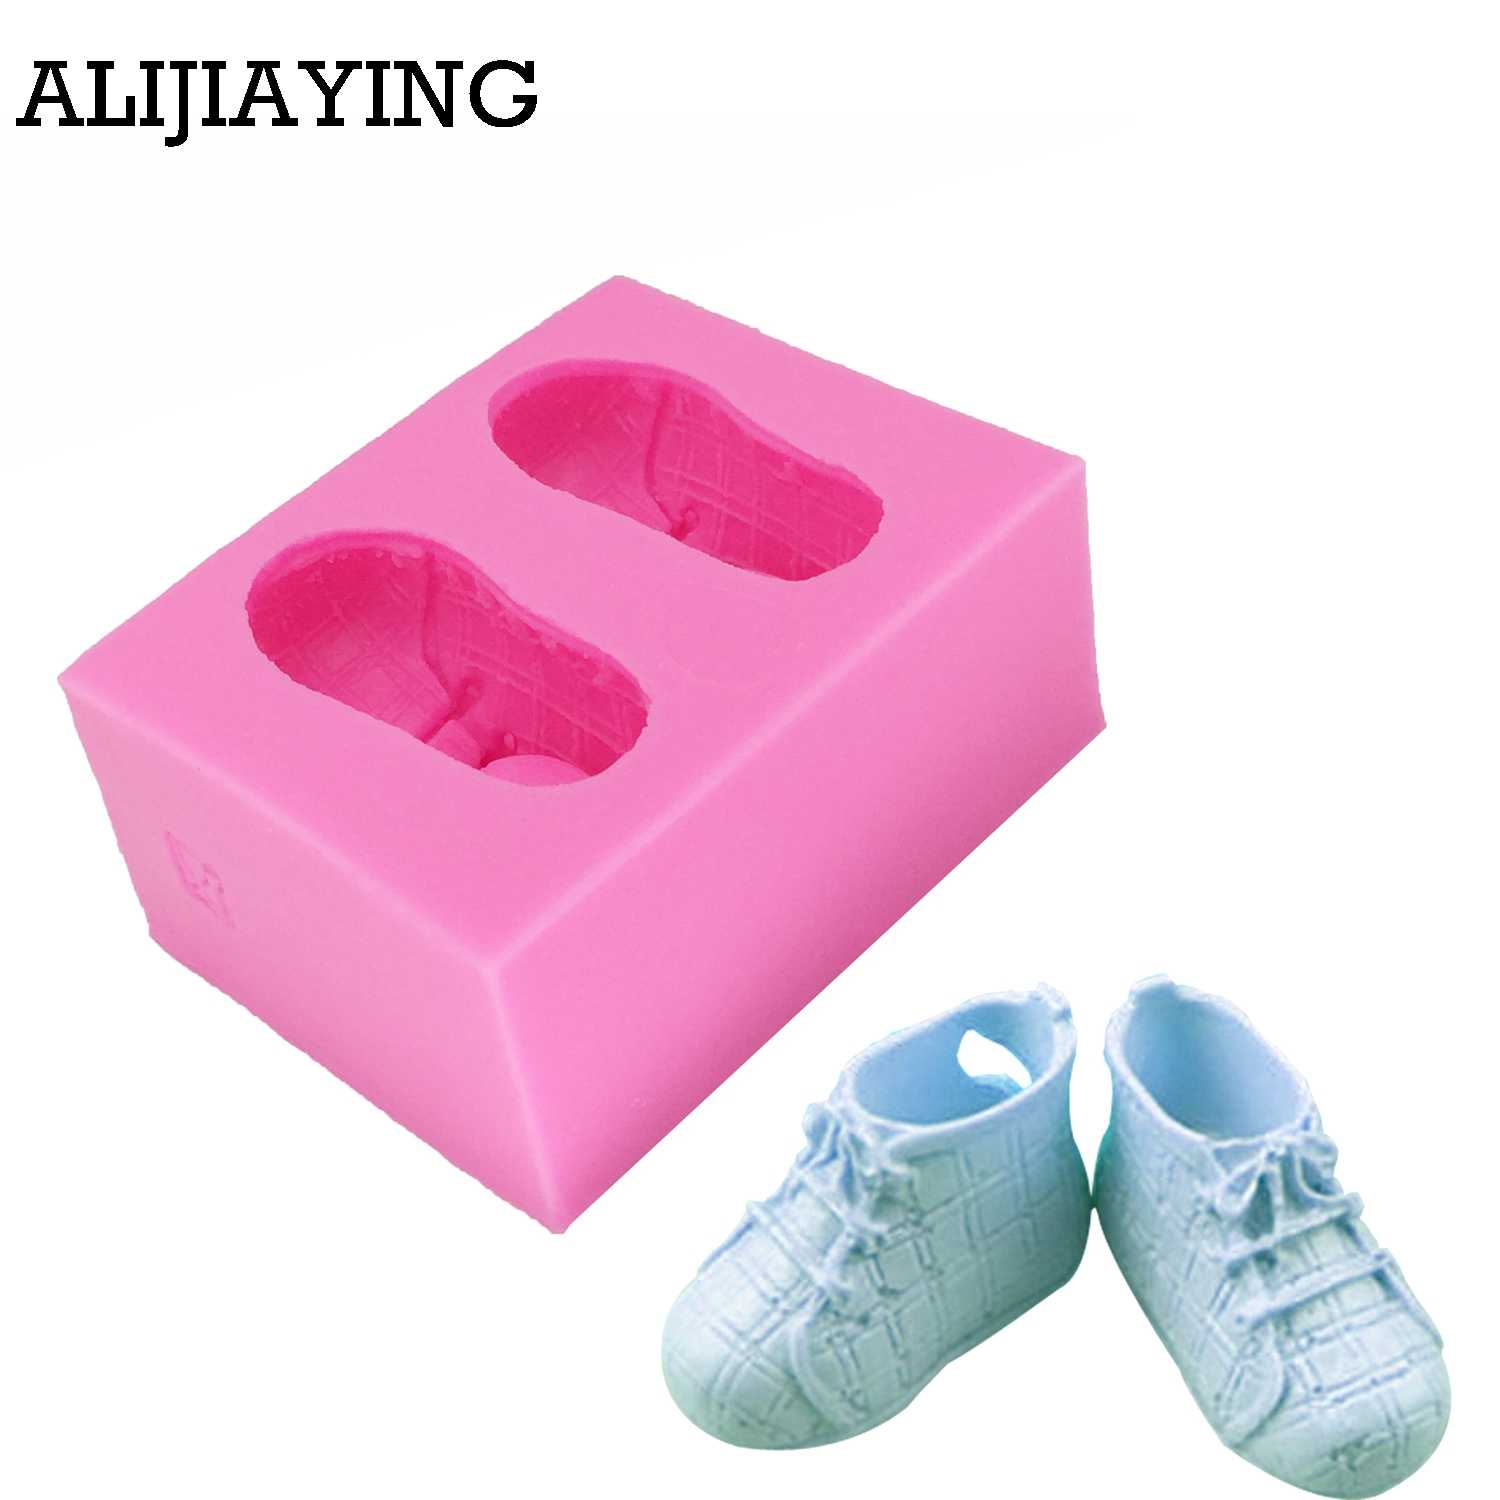 3D Baby Shoes Shaped Silicone Mold Fondant Cake Decorating Soap Chocolate Mould